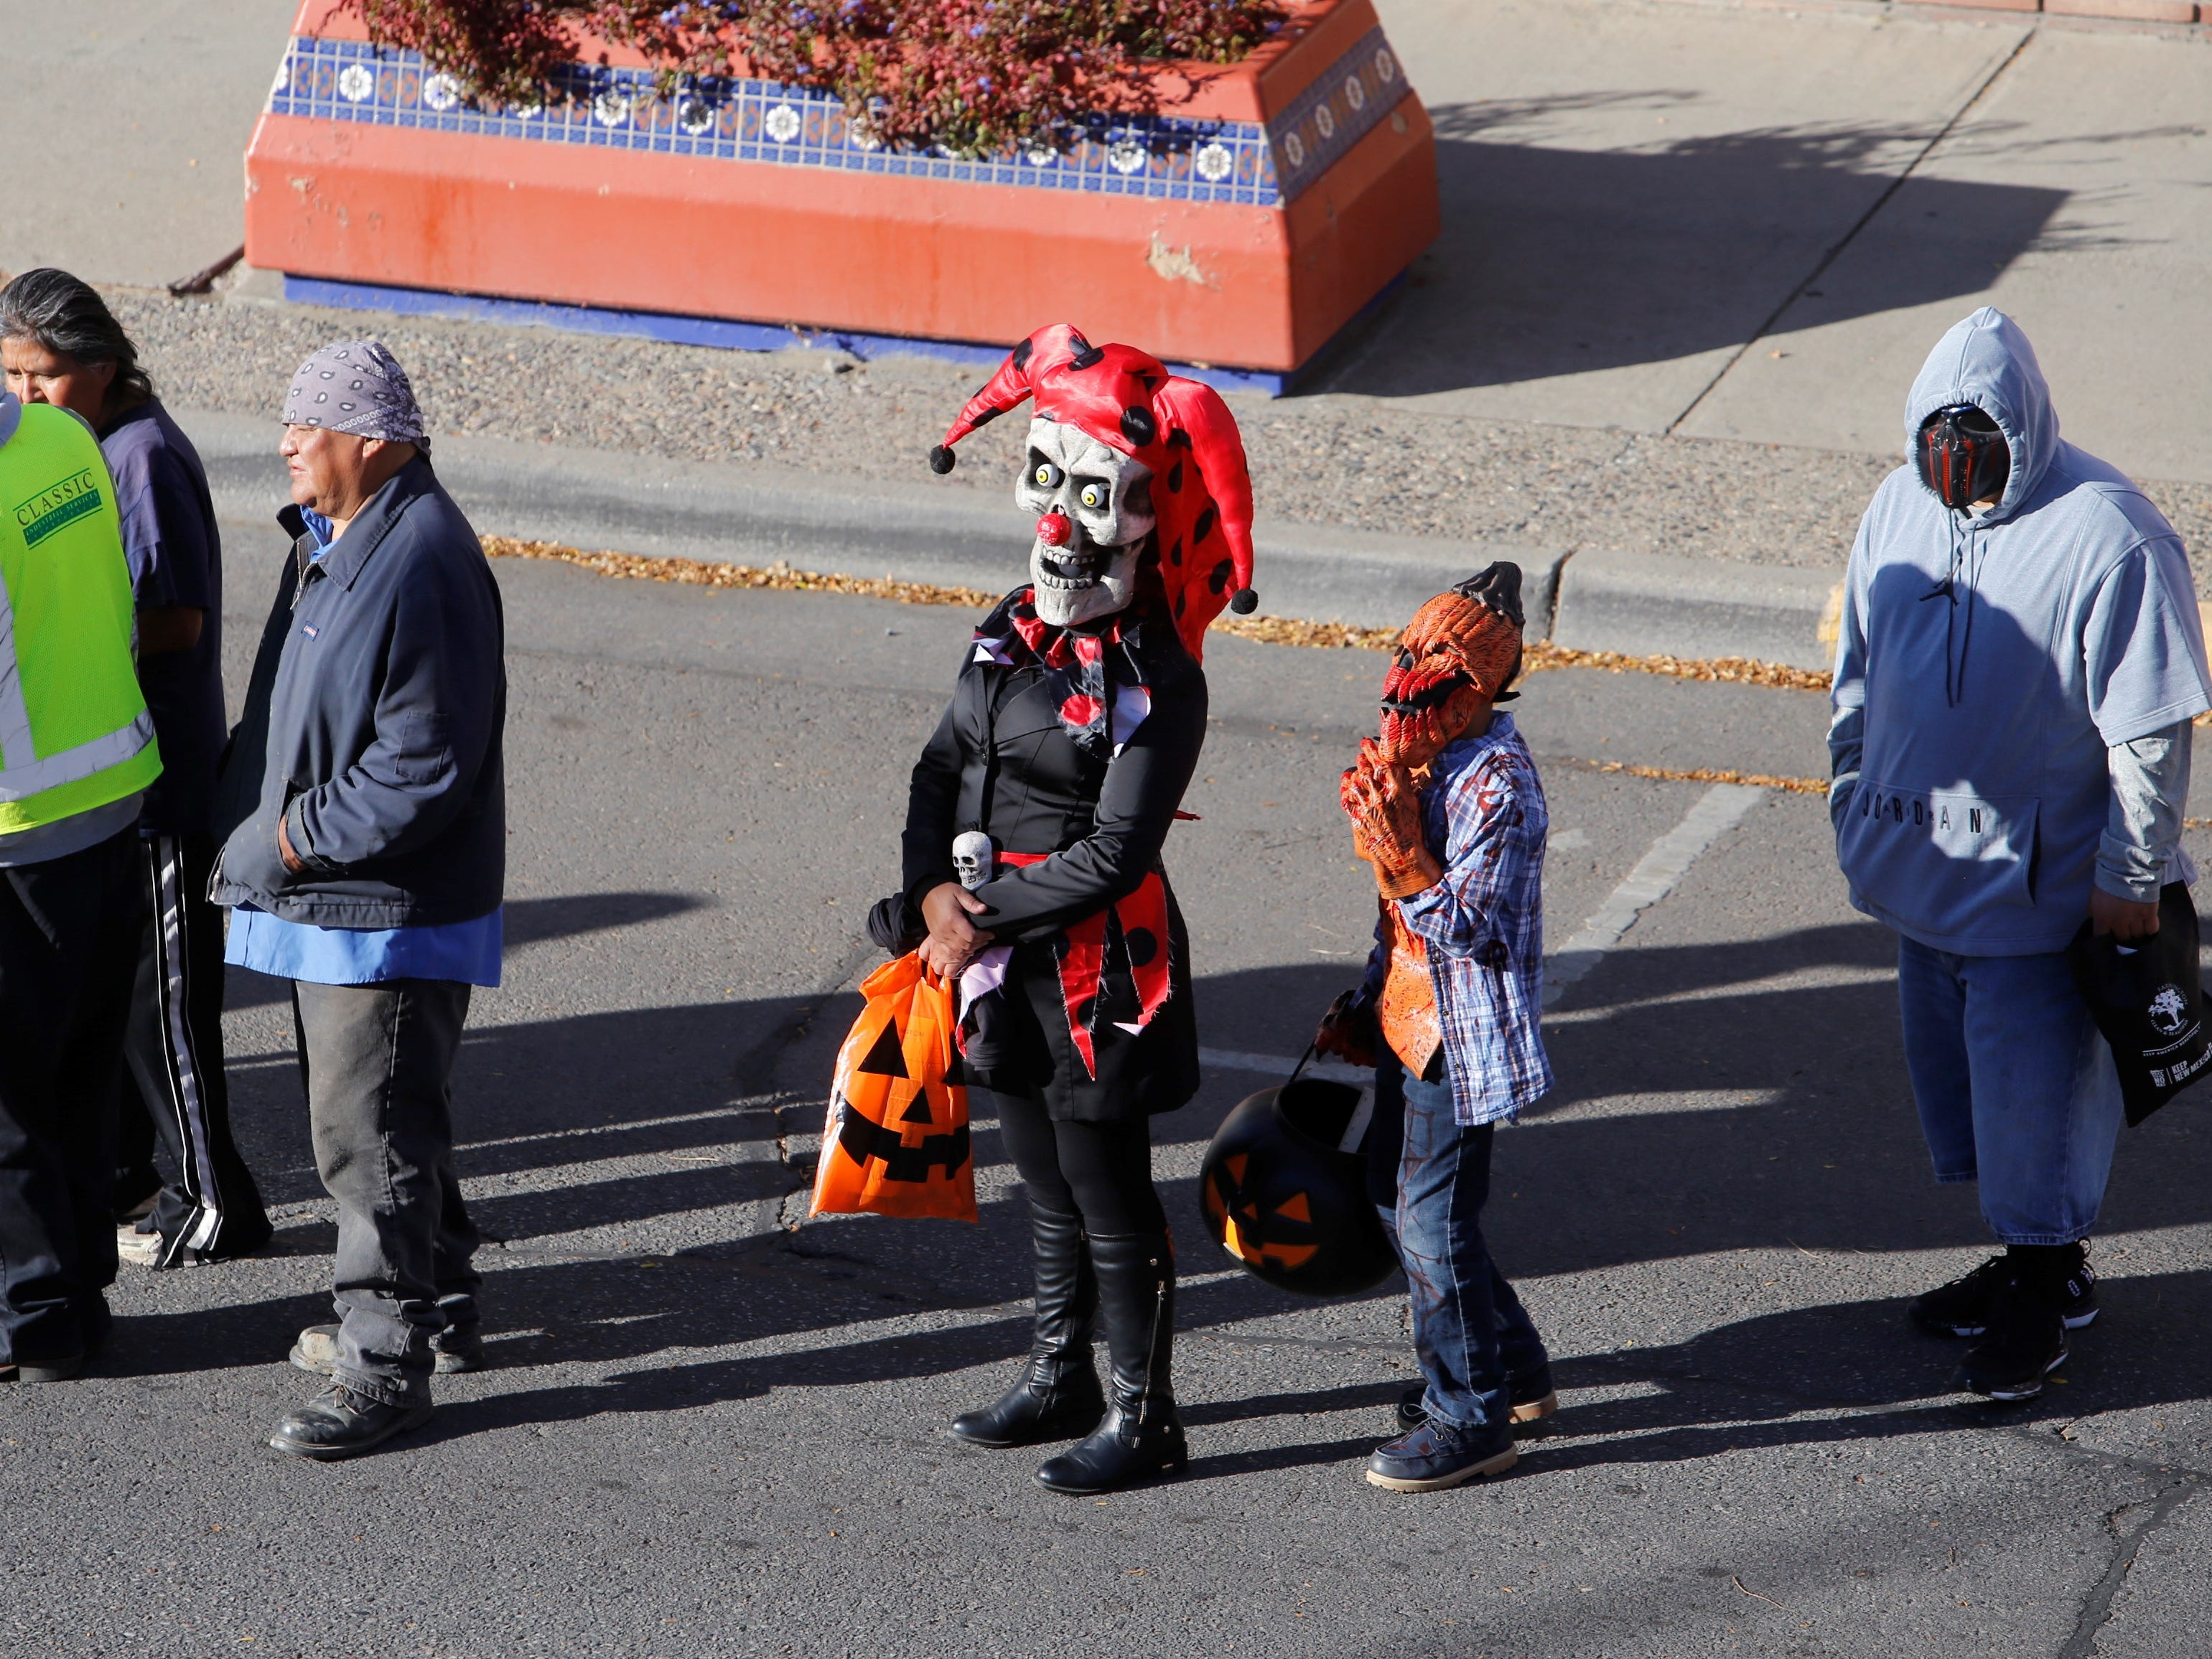 Trick or treaters line up to get candy at Tales of Tomorrow Comics walking down Main Street during BooPalooza Wednesday in Farmington.